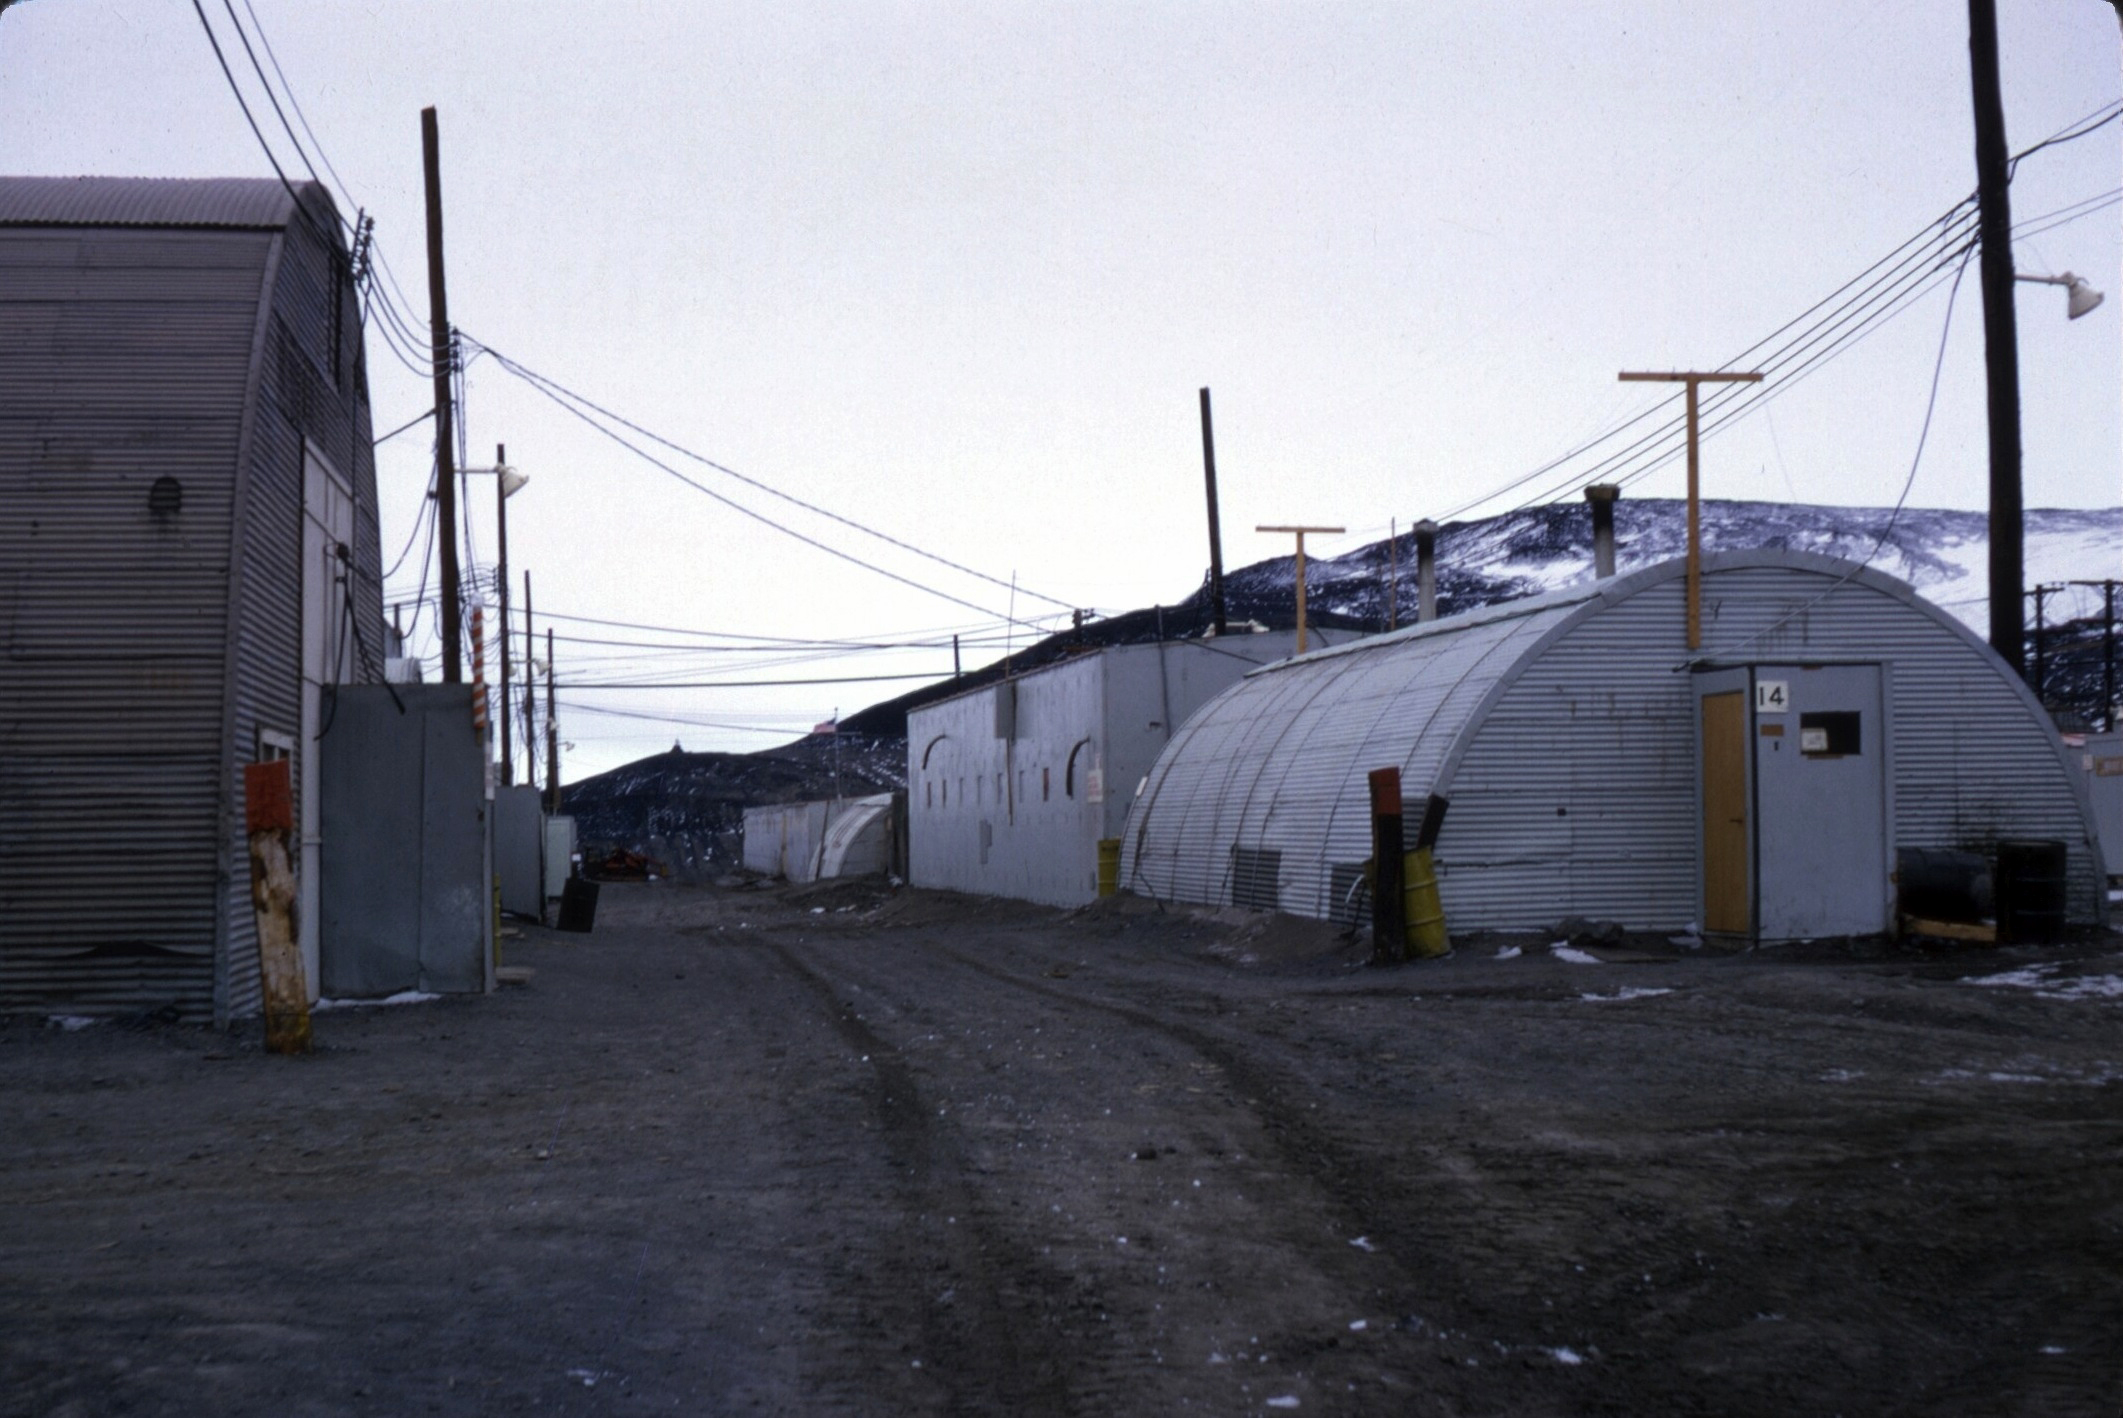 Quonset hut buildings.